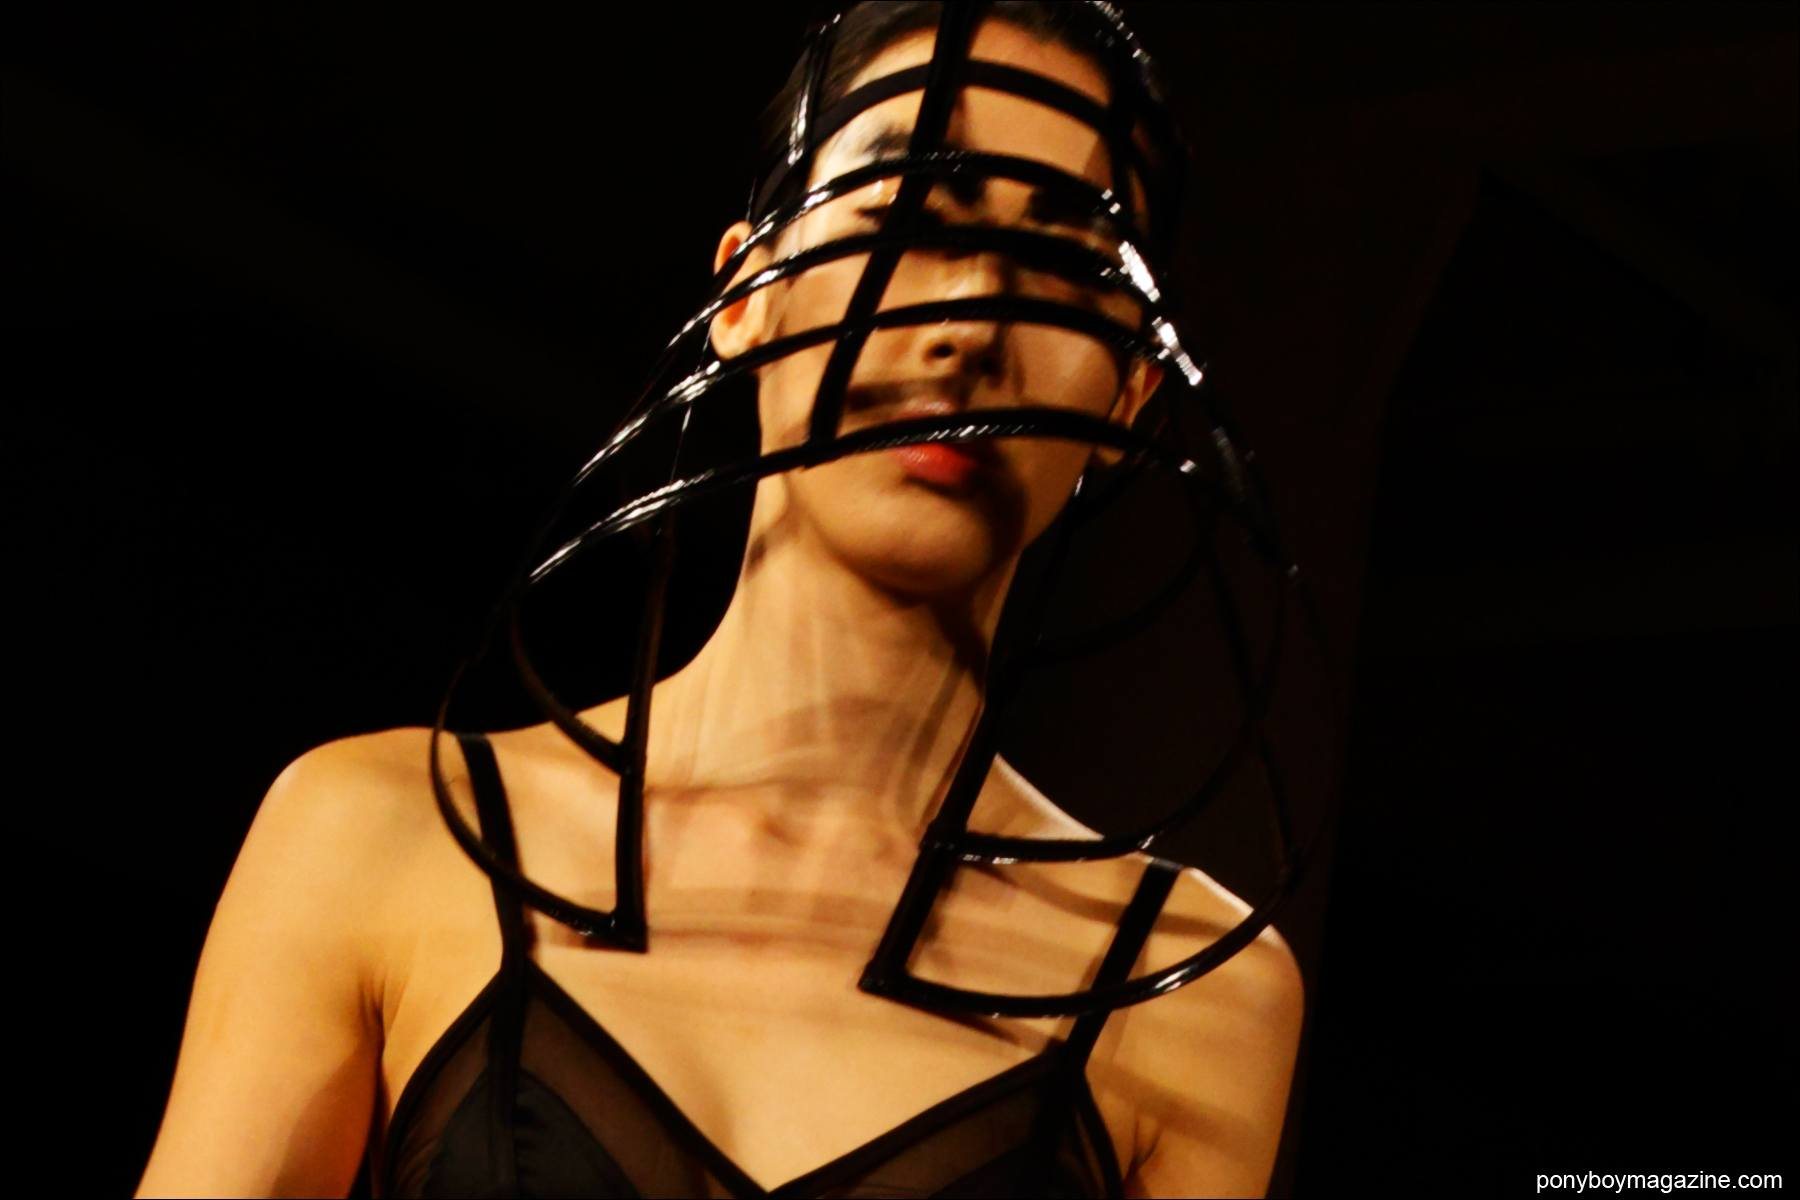 A futuristic Chromat F/W 2015 cage hat, photographed at Milk Studios by Alexander Thompson for Ponyboy magazine.